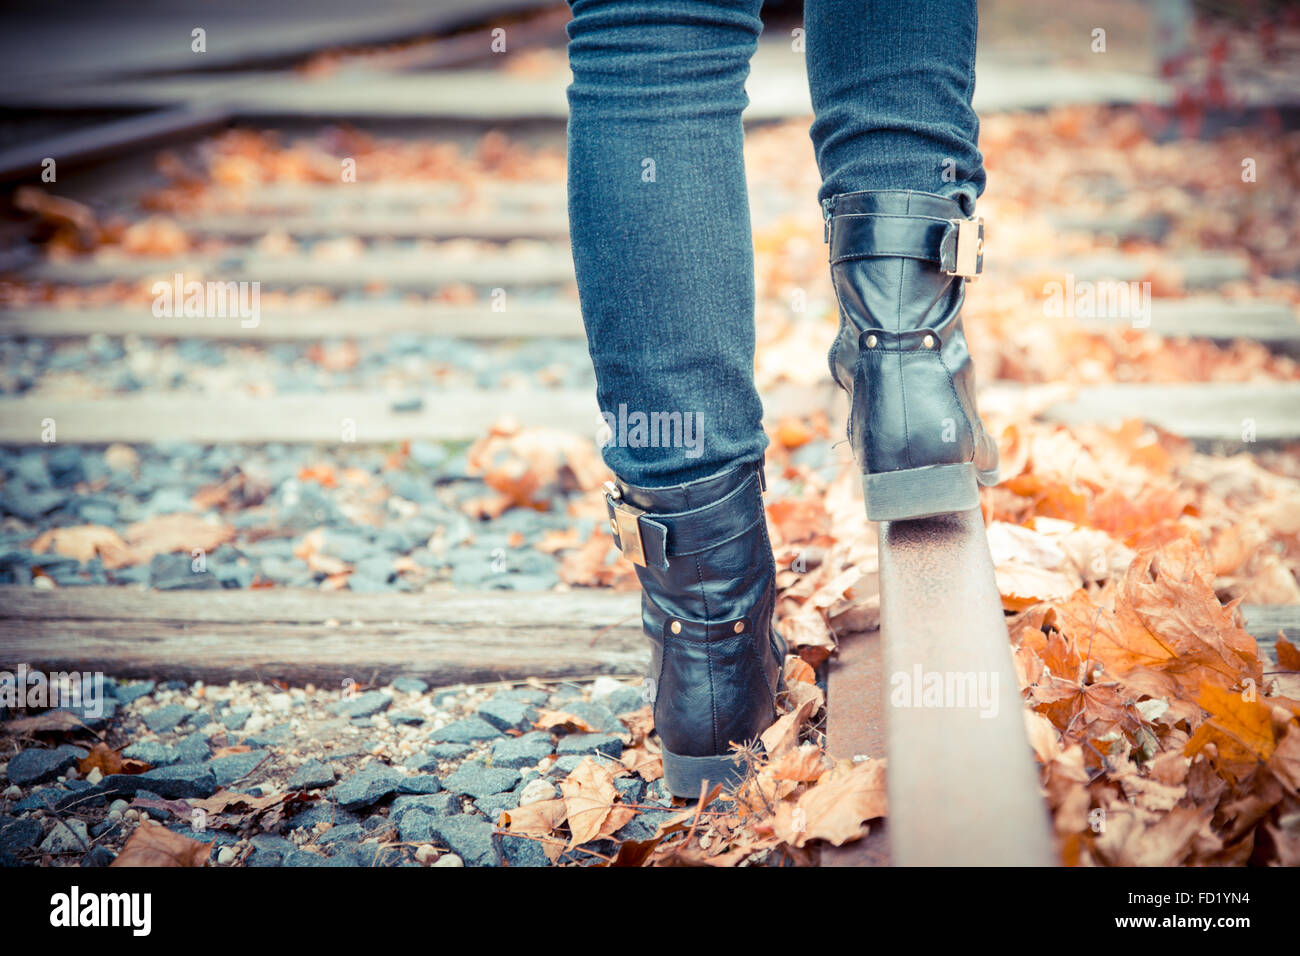 Black leather boots along old railroad tracks. Vintage toned image. - Stock Image